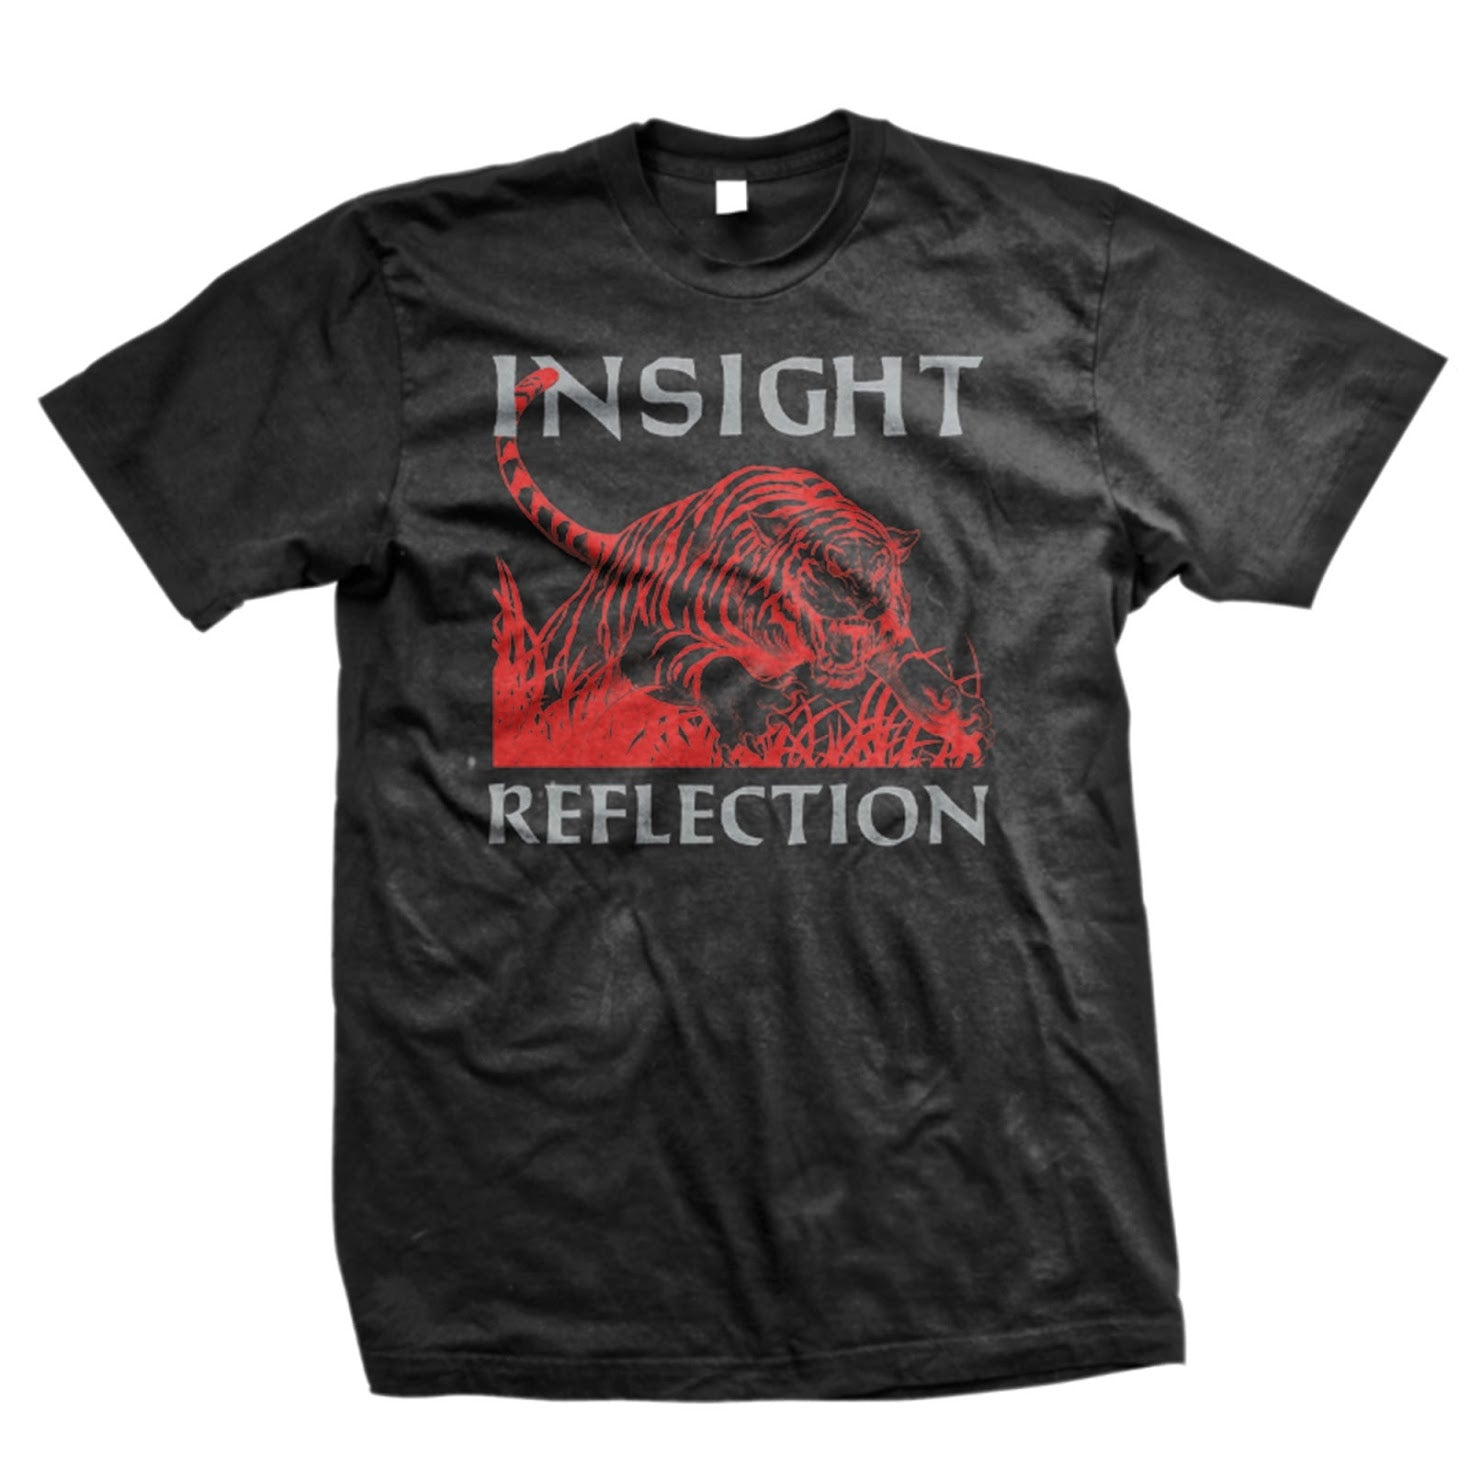 INSIGHT 'Reflection' T-Shirt